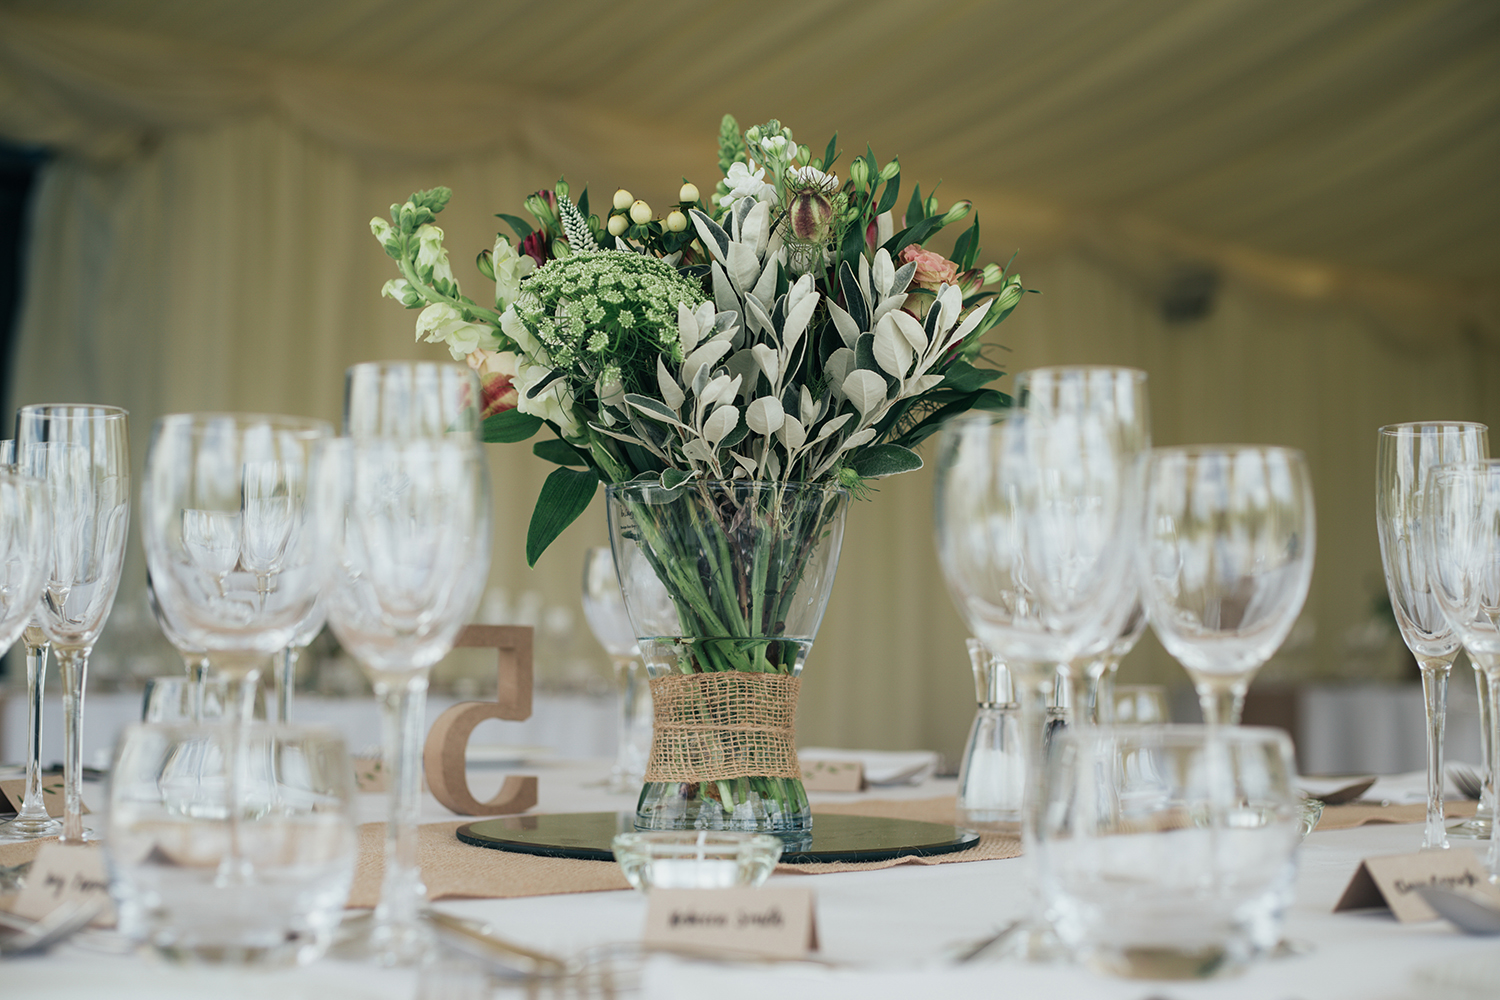 Wedding flowers on dining table